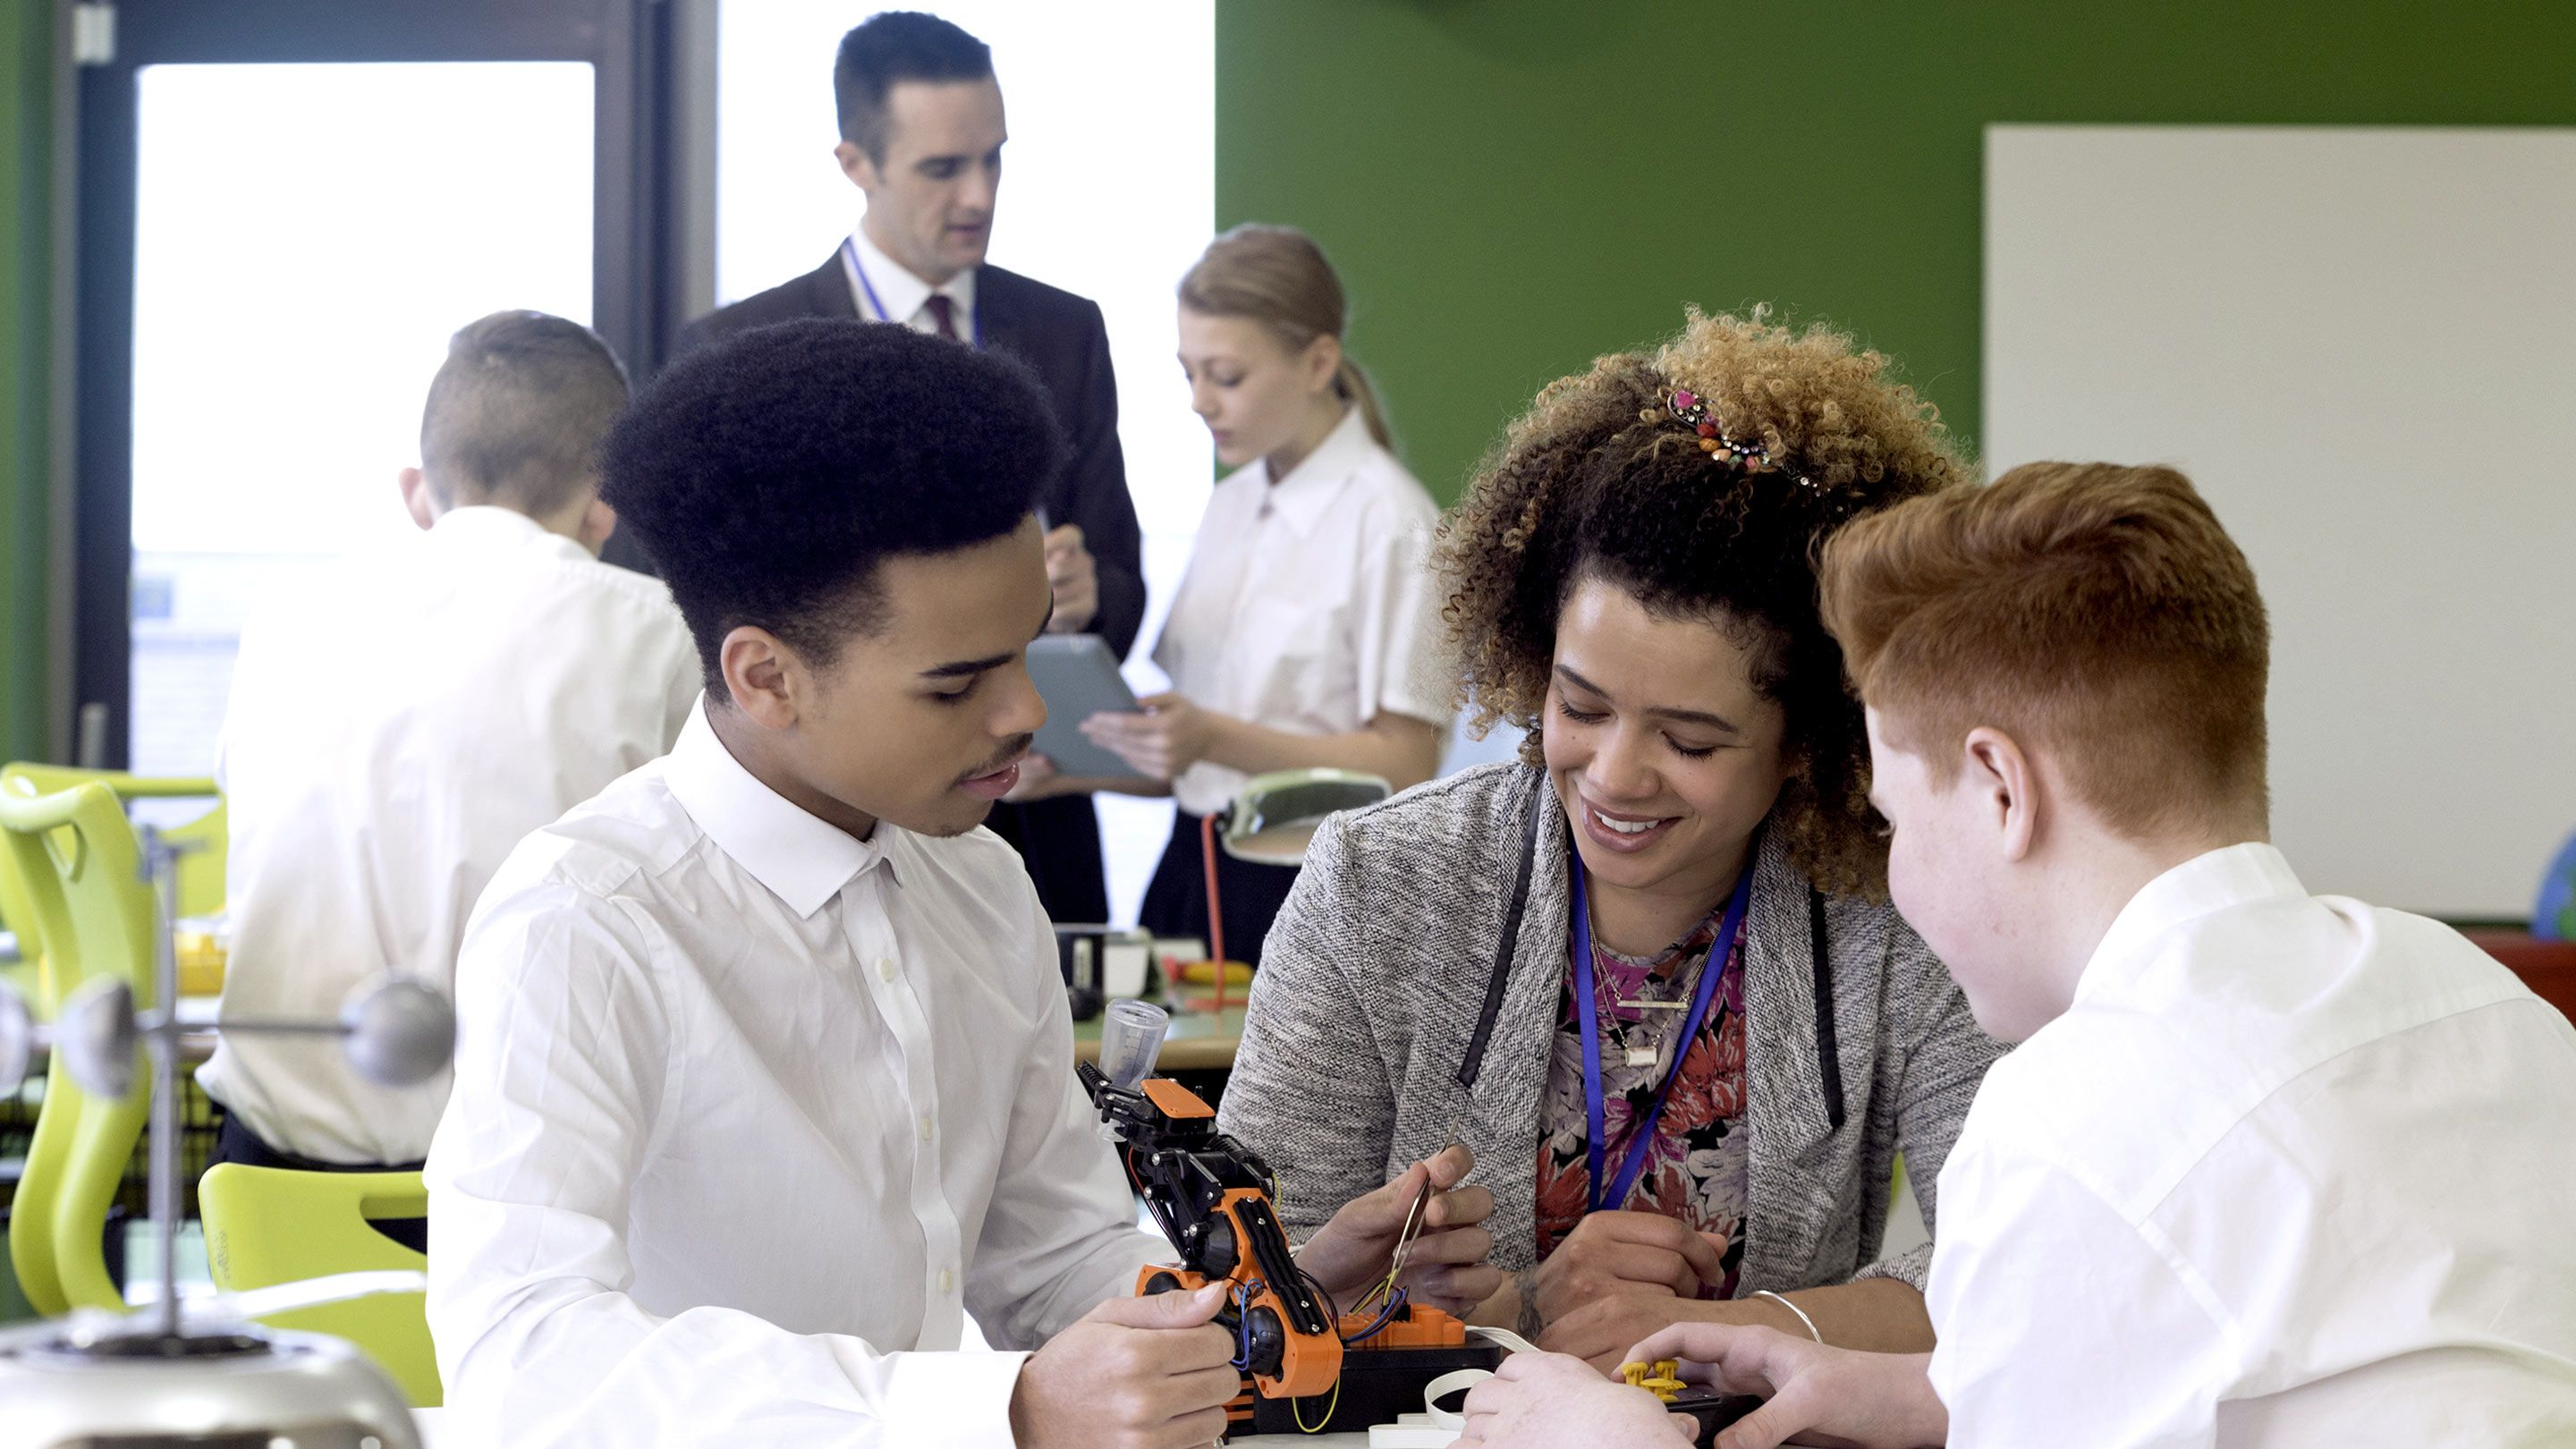 Two adults work with groups of students in a classroom.